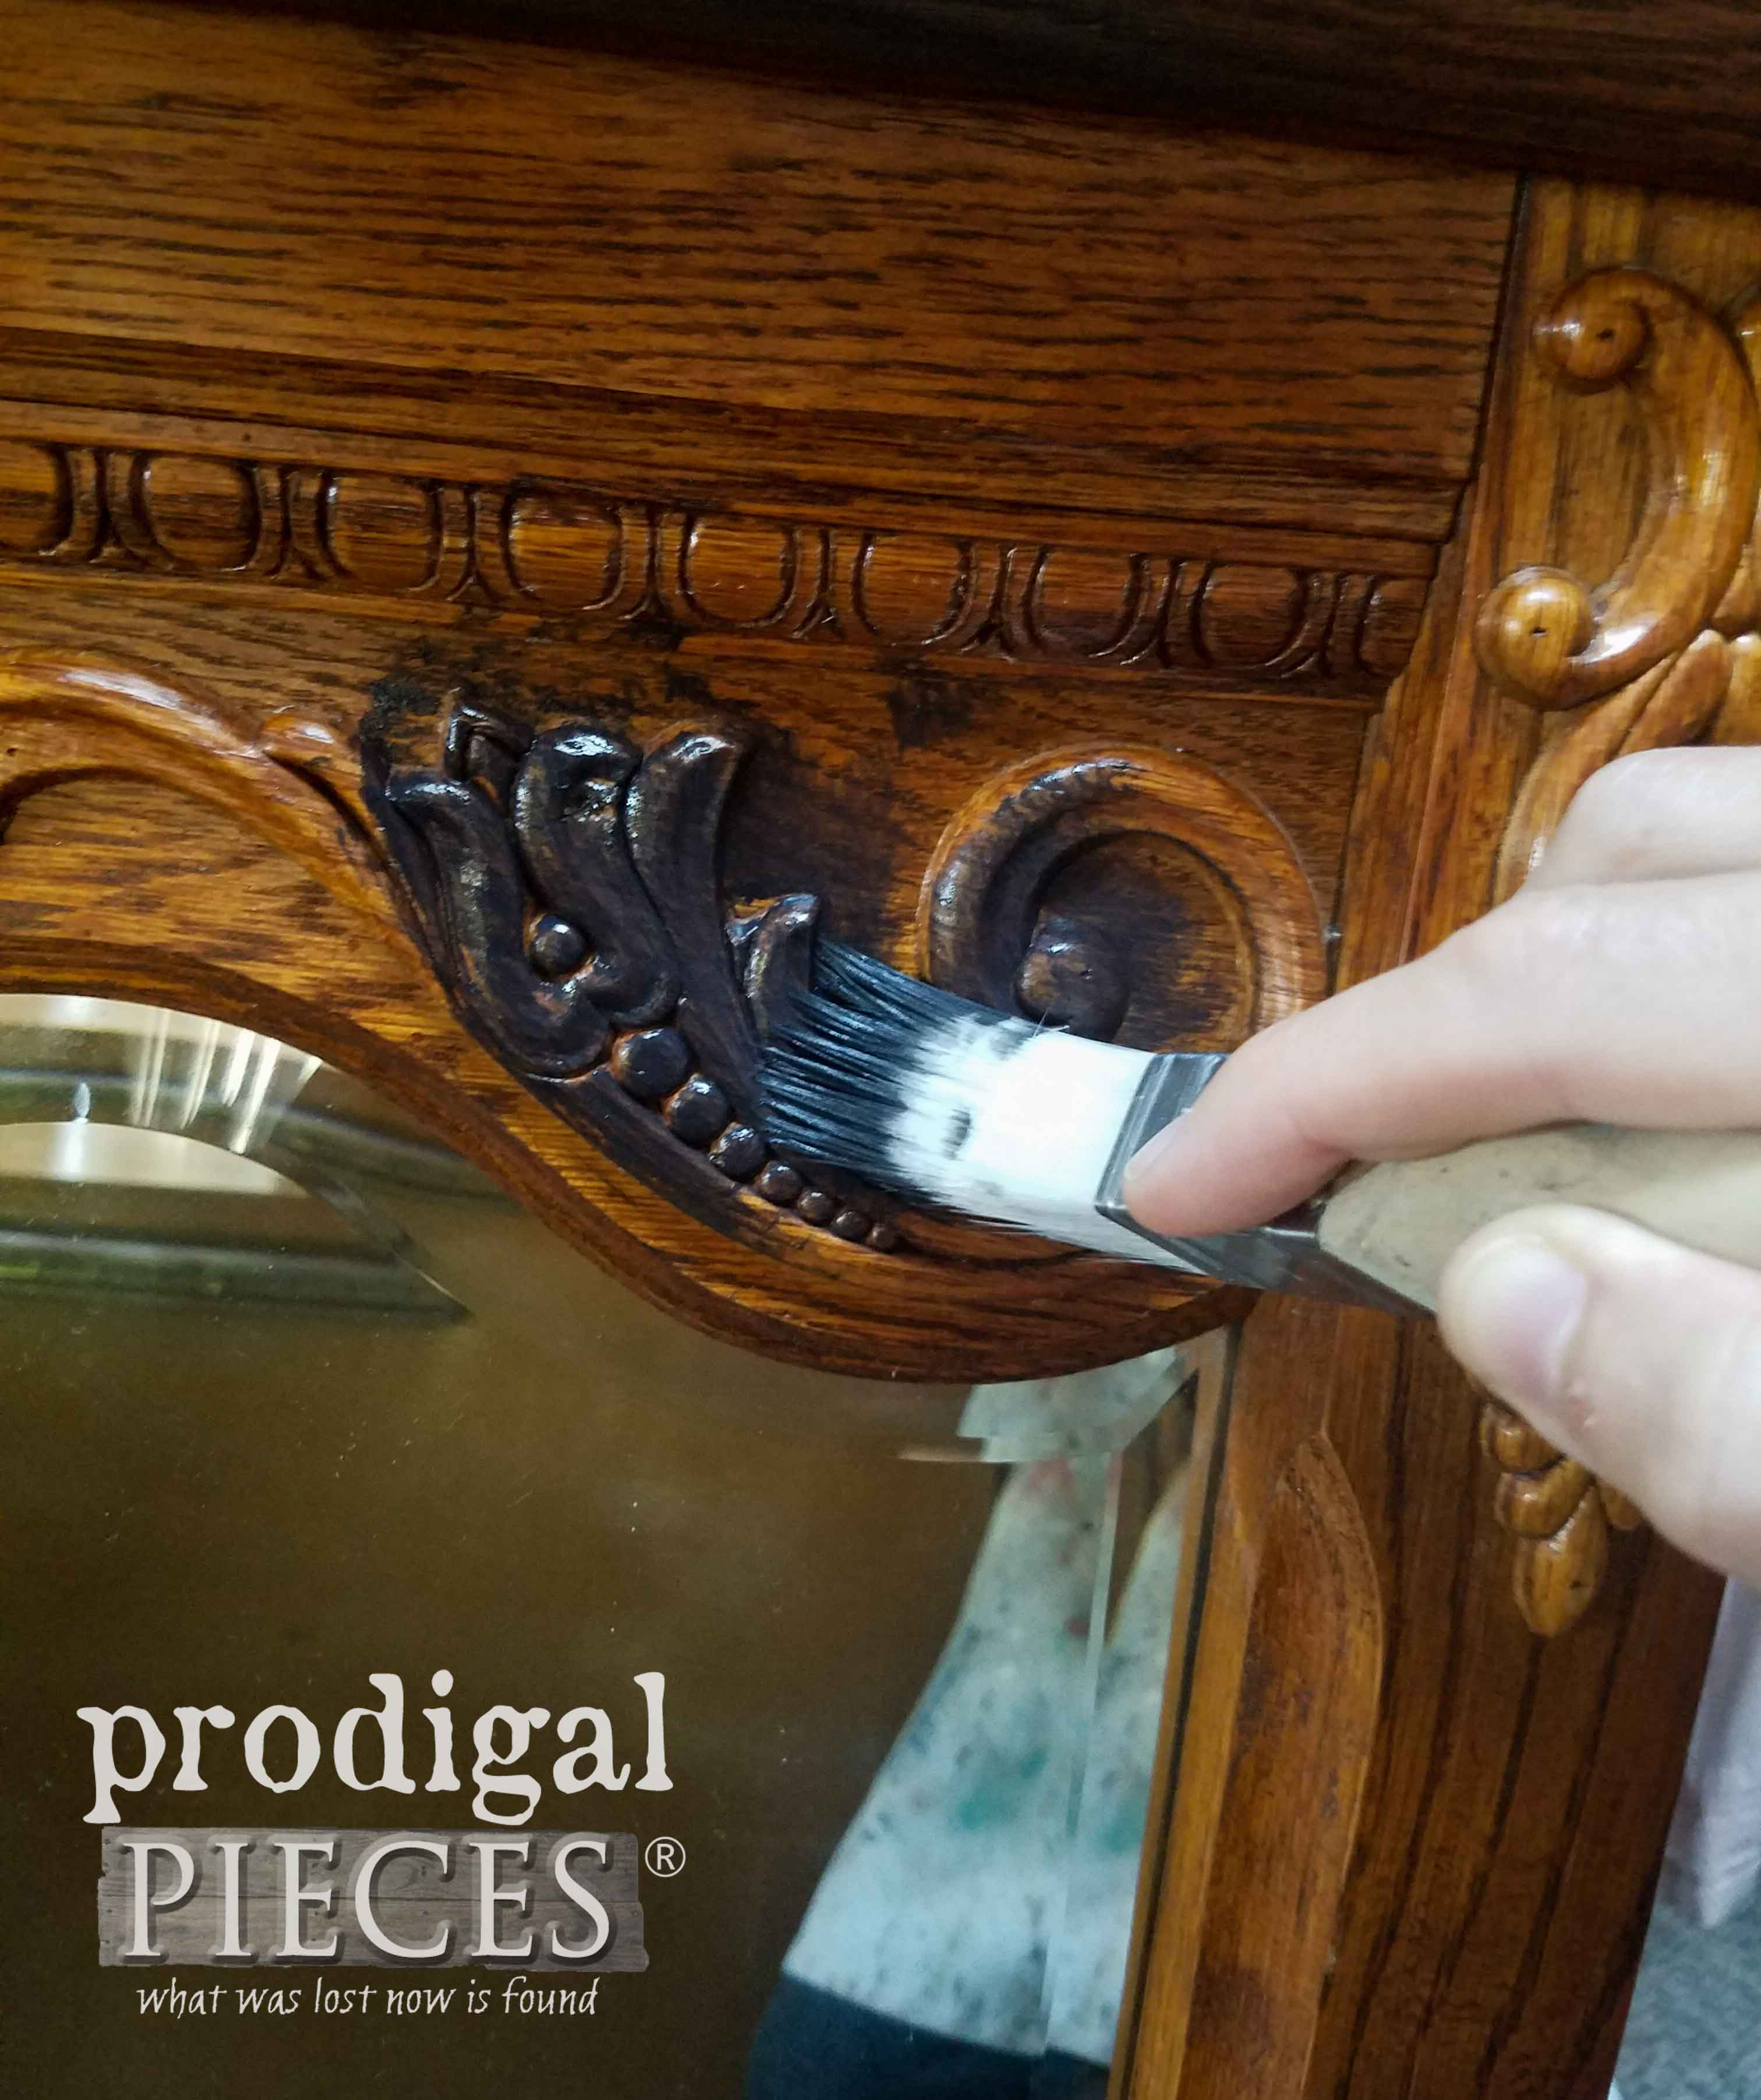 Painting Mirror with Zibra Square Brush and Caviar Black by Prodigal Pieces | prodigalpieces.com